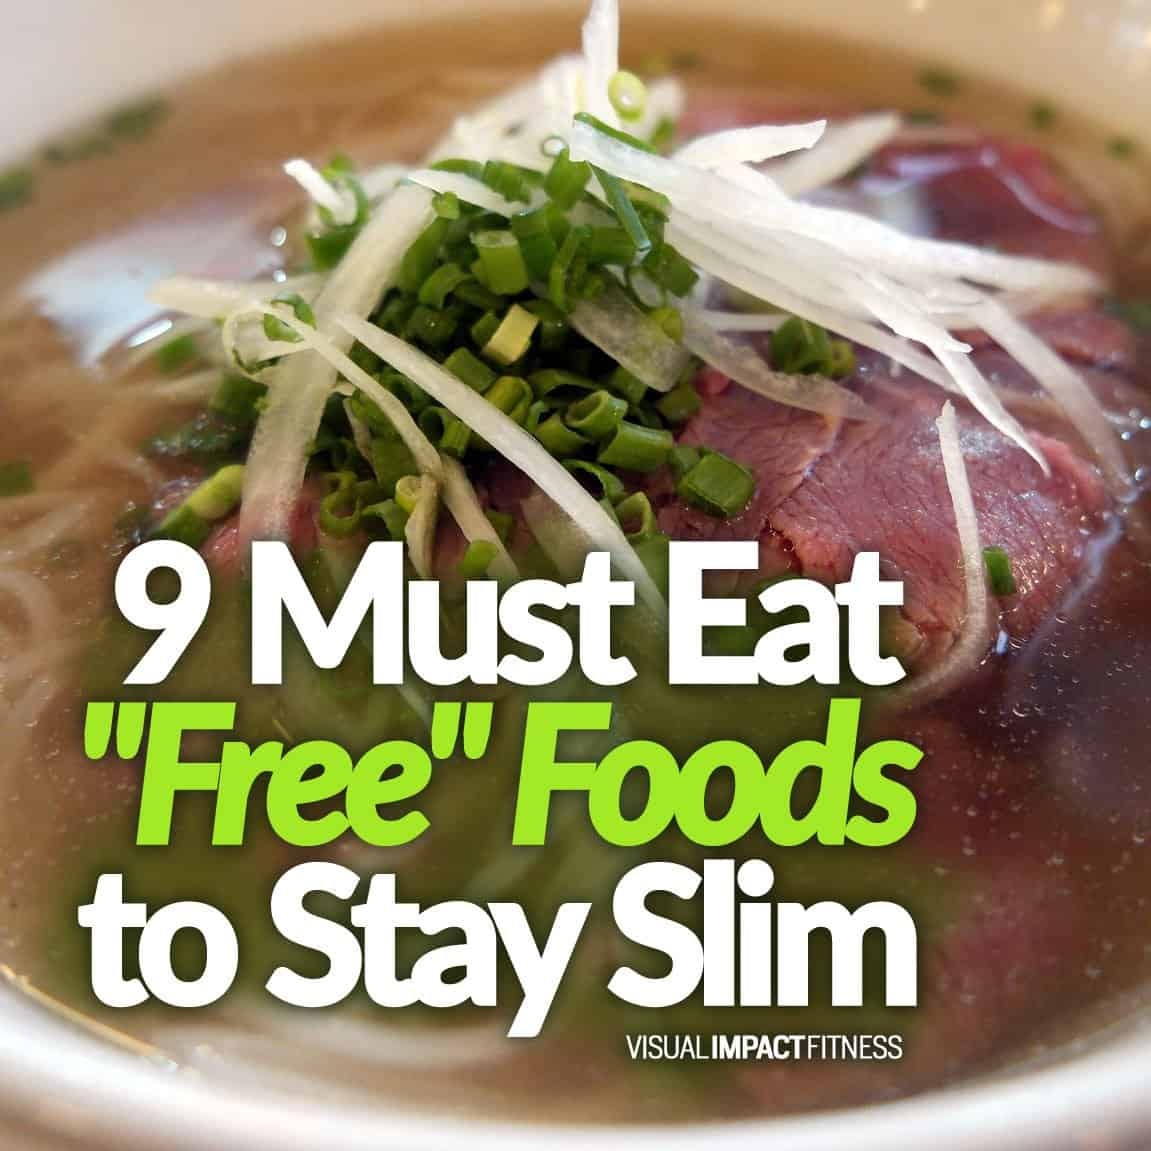 9 Must Eat Free Foods to Stay Slim